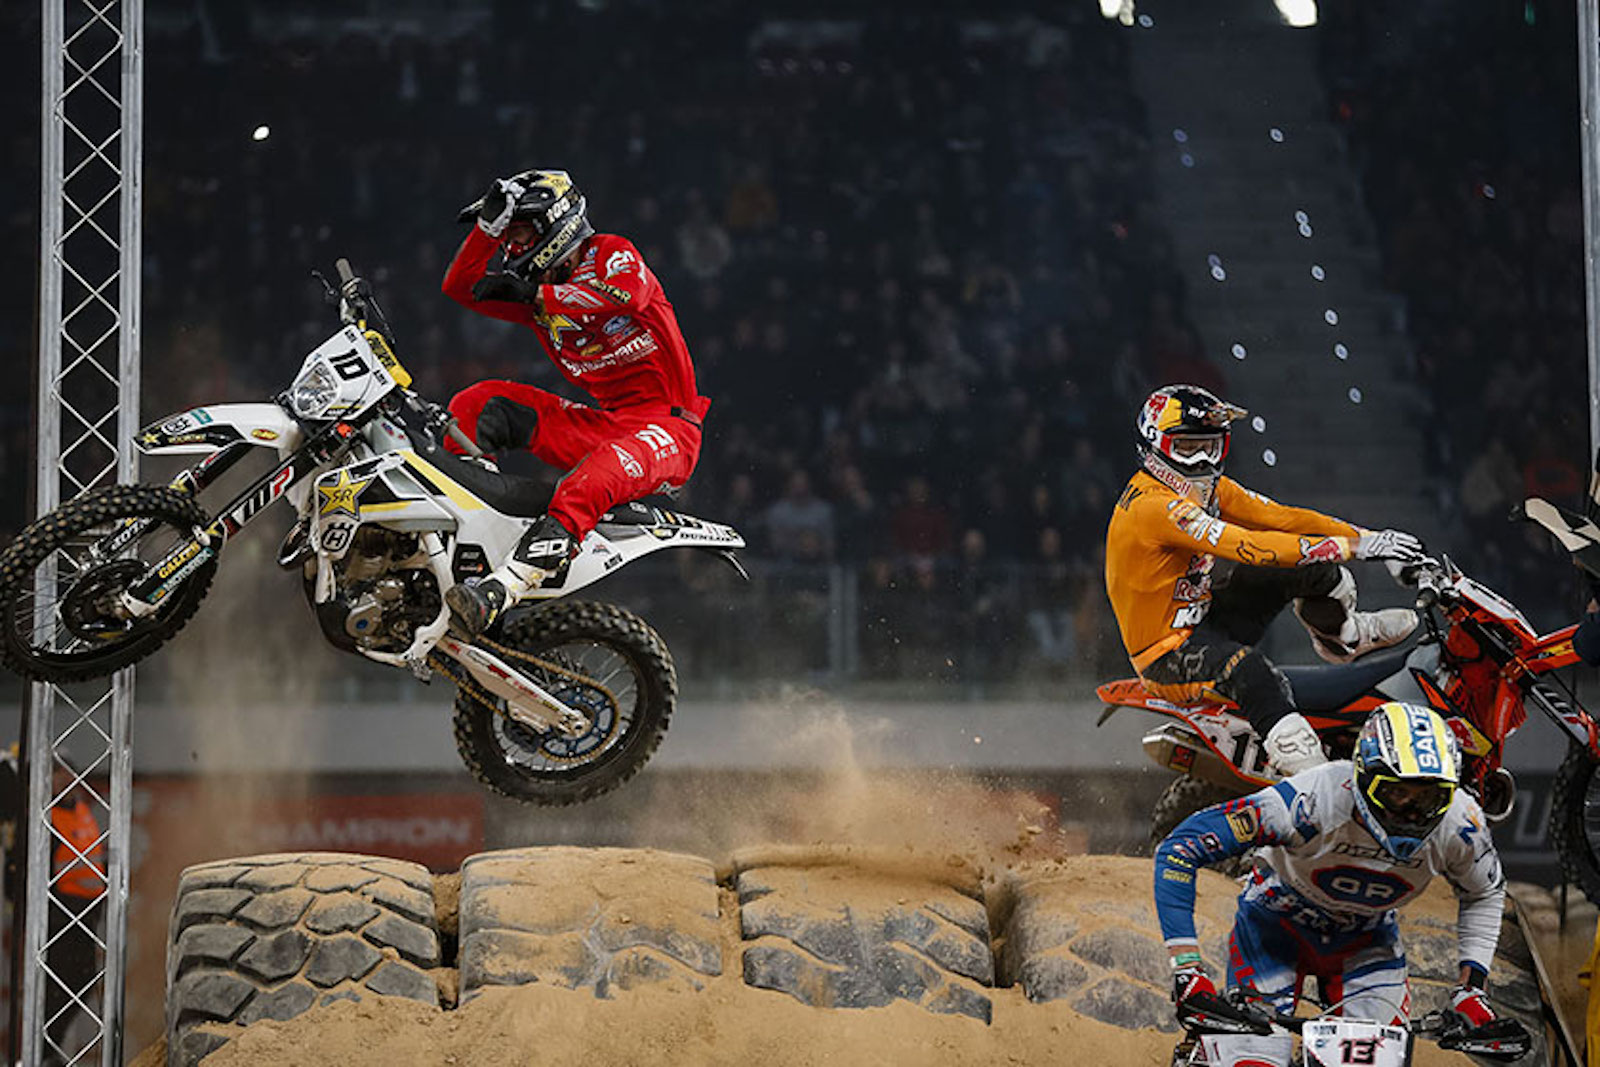 Haaker and Blazusiak head-to-head for 2019 EnduroCross title this weekend